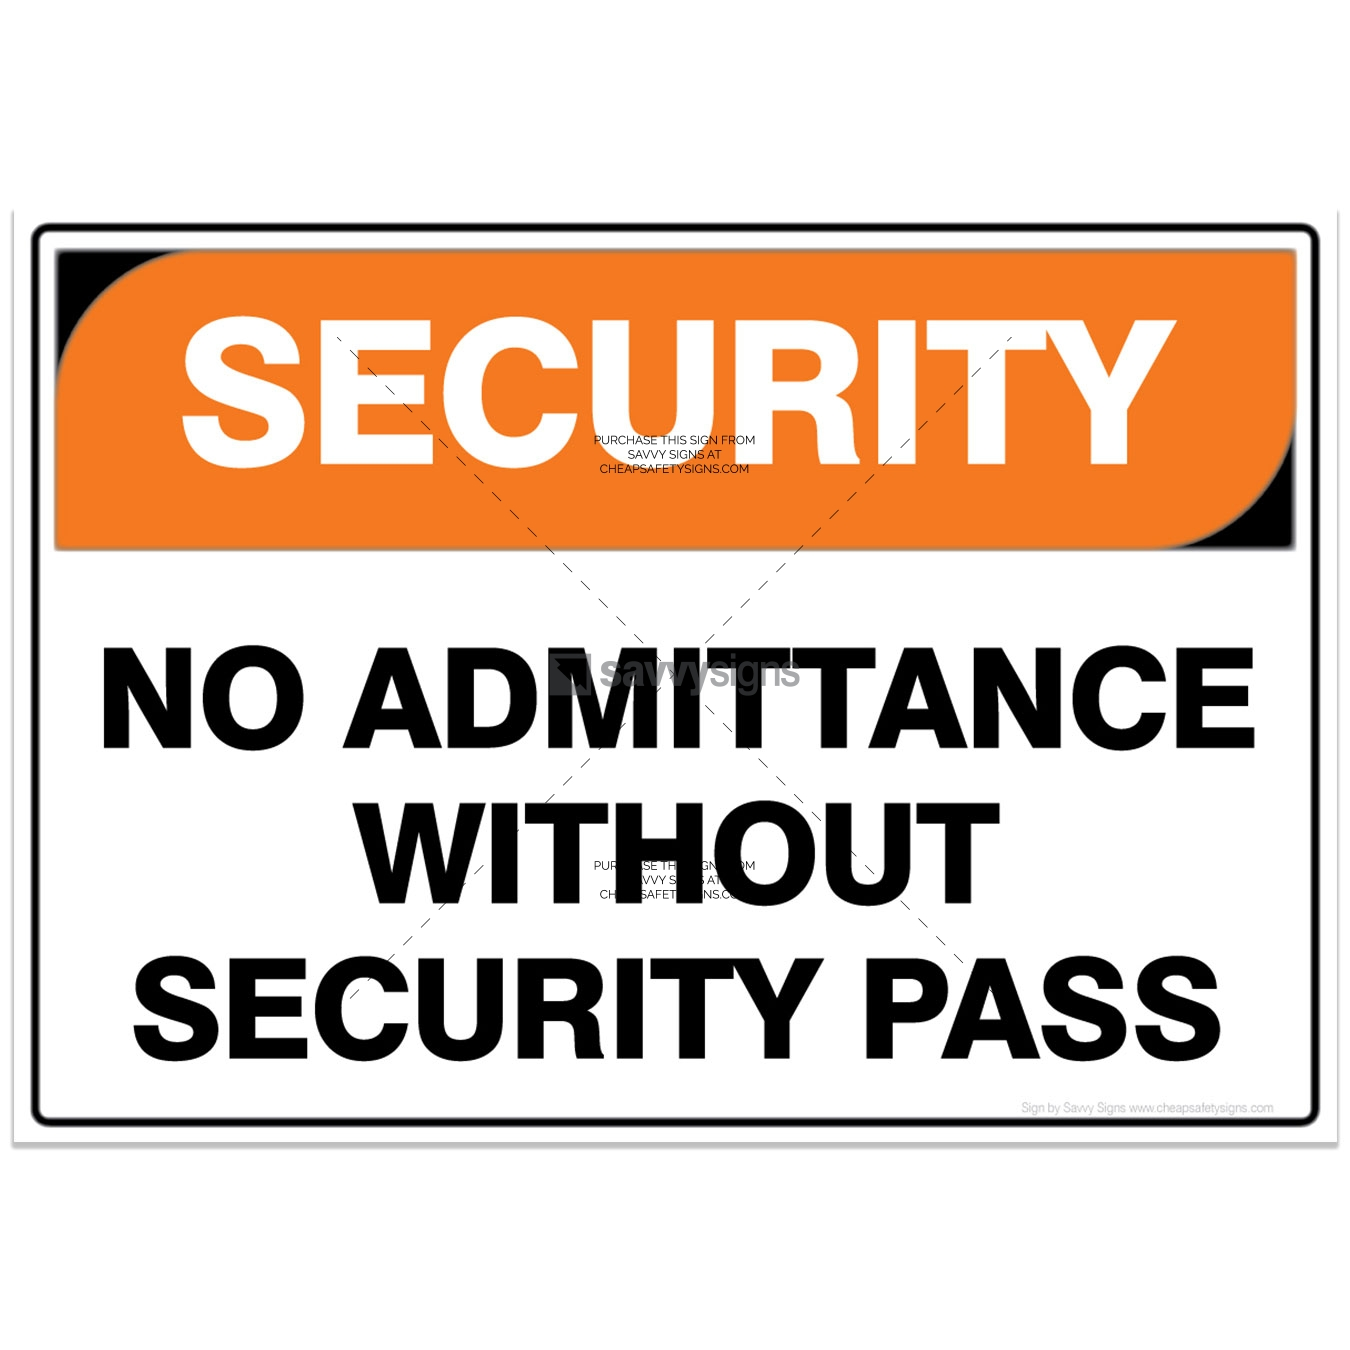 SSSEC3012-SECURITY-Workplace-Safety-Signs_Savvy-Signs_v3